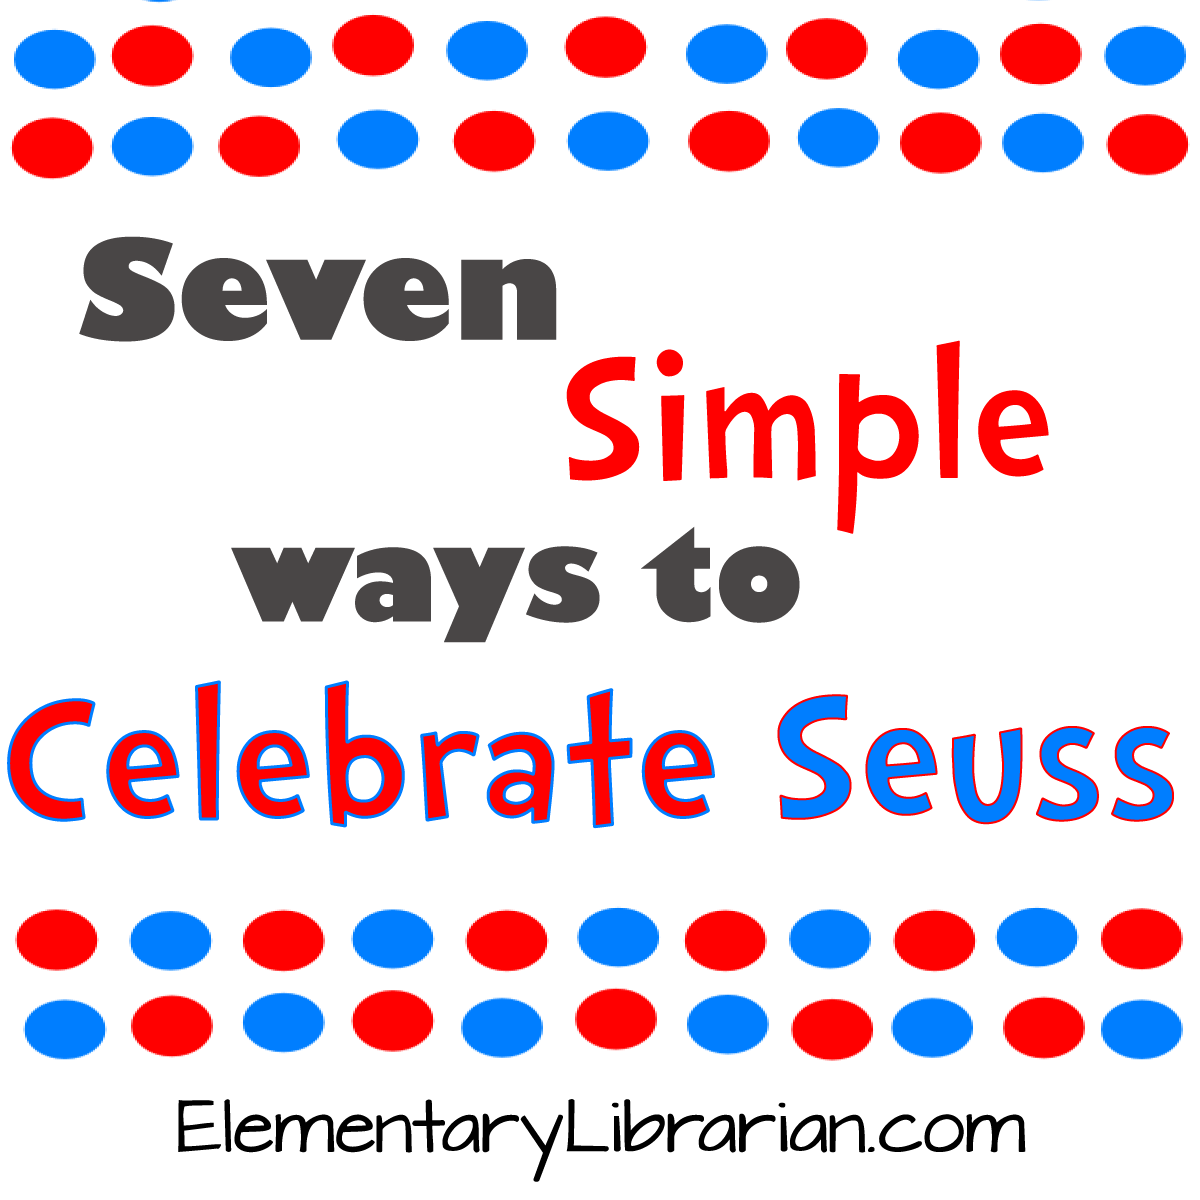 Seven Simple Ways To Celebrate Seuss 4 Is So Much Fun